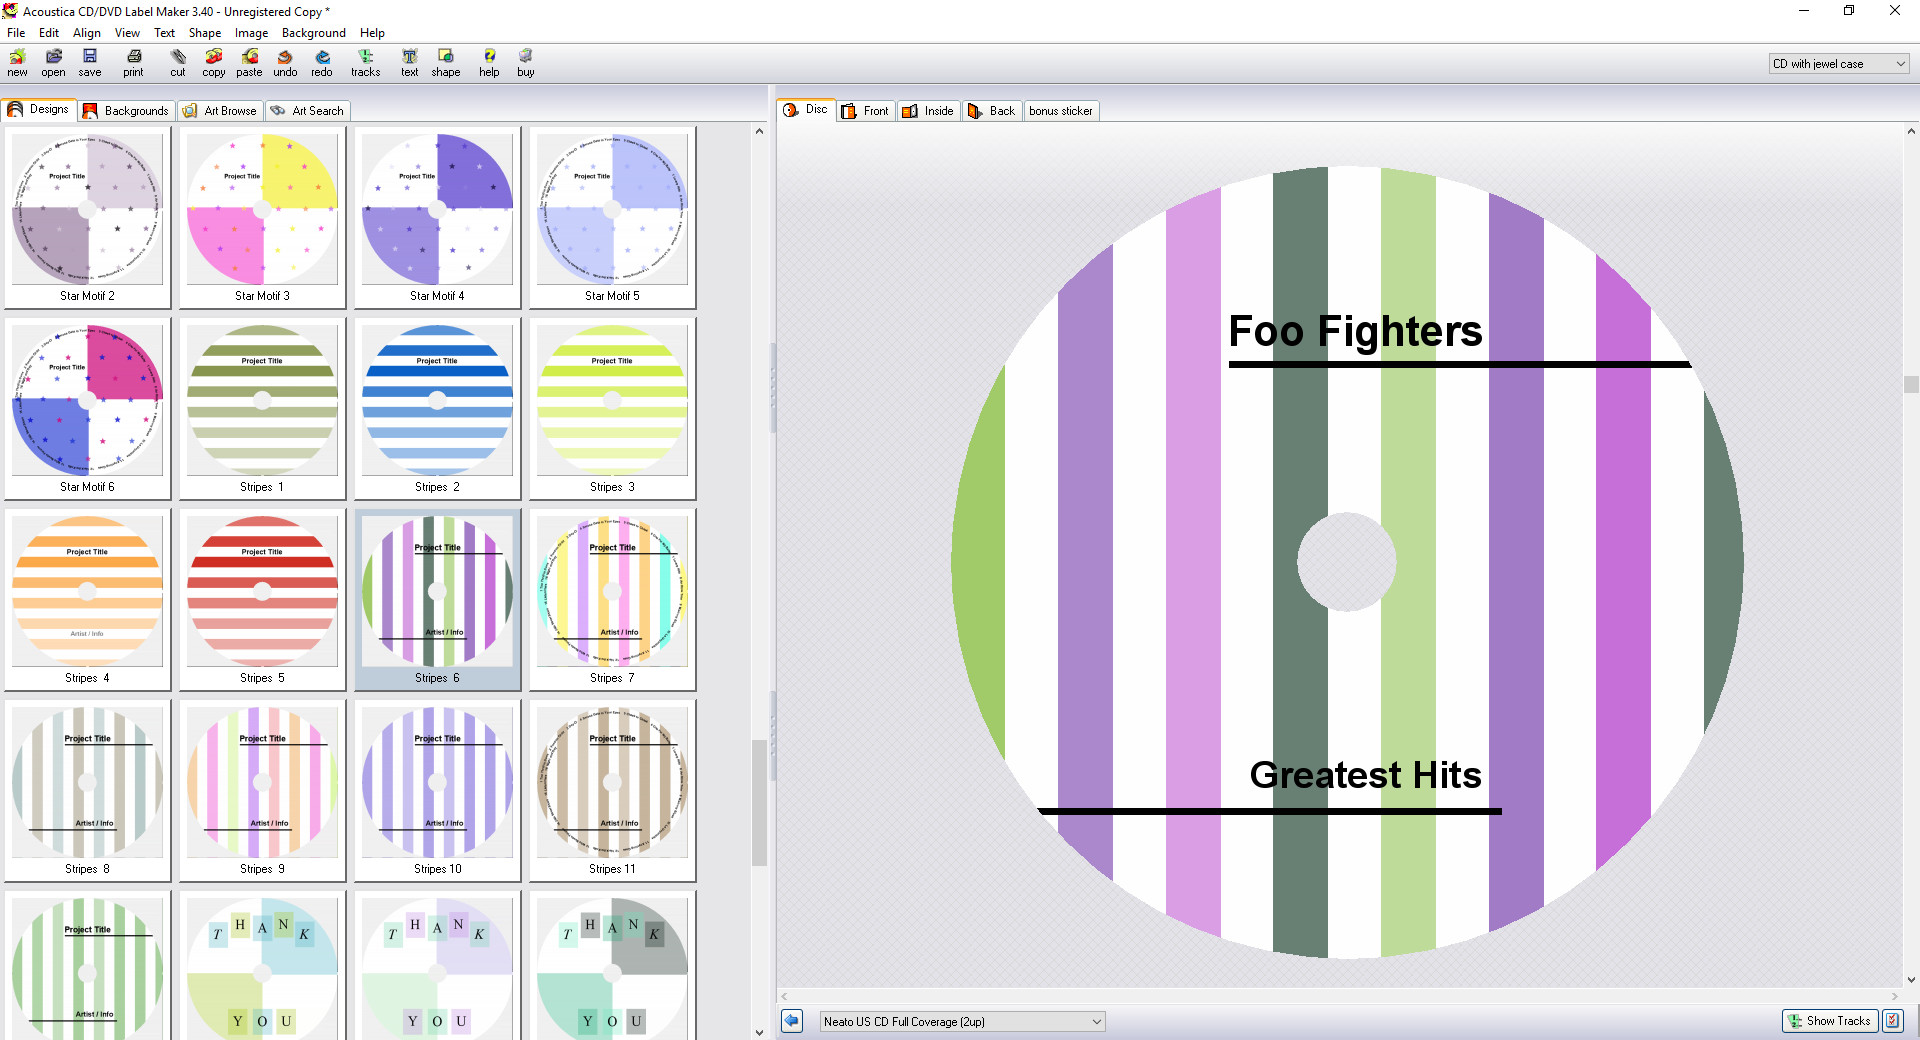 Screenshot 1 - Acoustica CD/DVD Label Maker